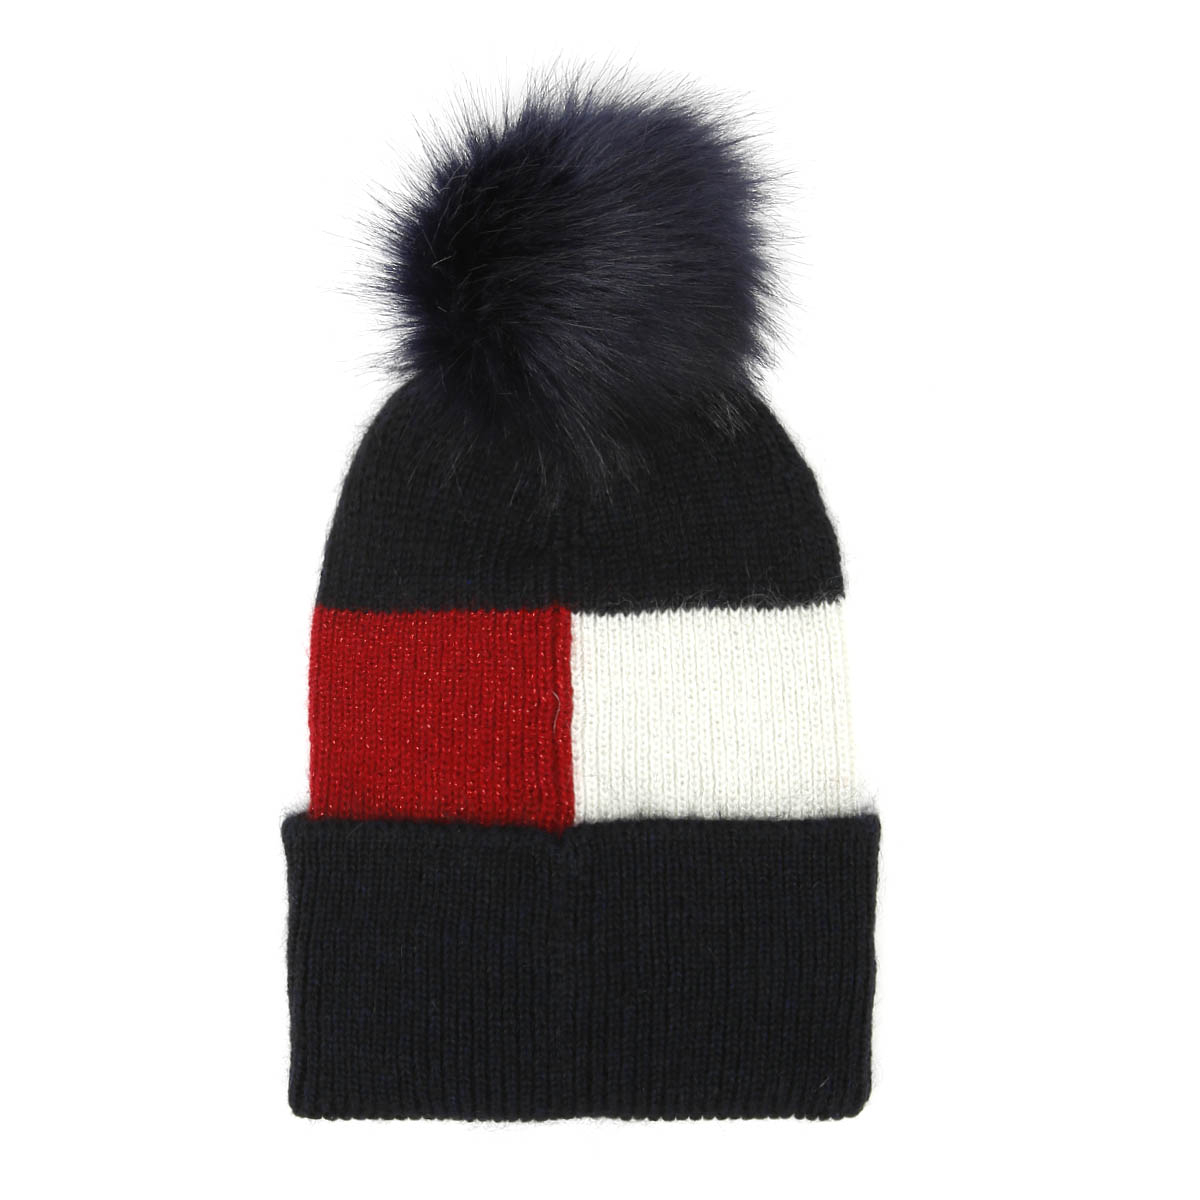 1517a37c1e0 Details about Tommy Hilfiger Luxury Colour Blocked Navy Beanie Unisex Warm  Winter Knitted Hat